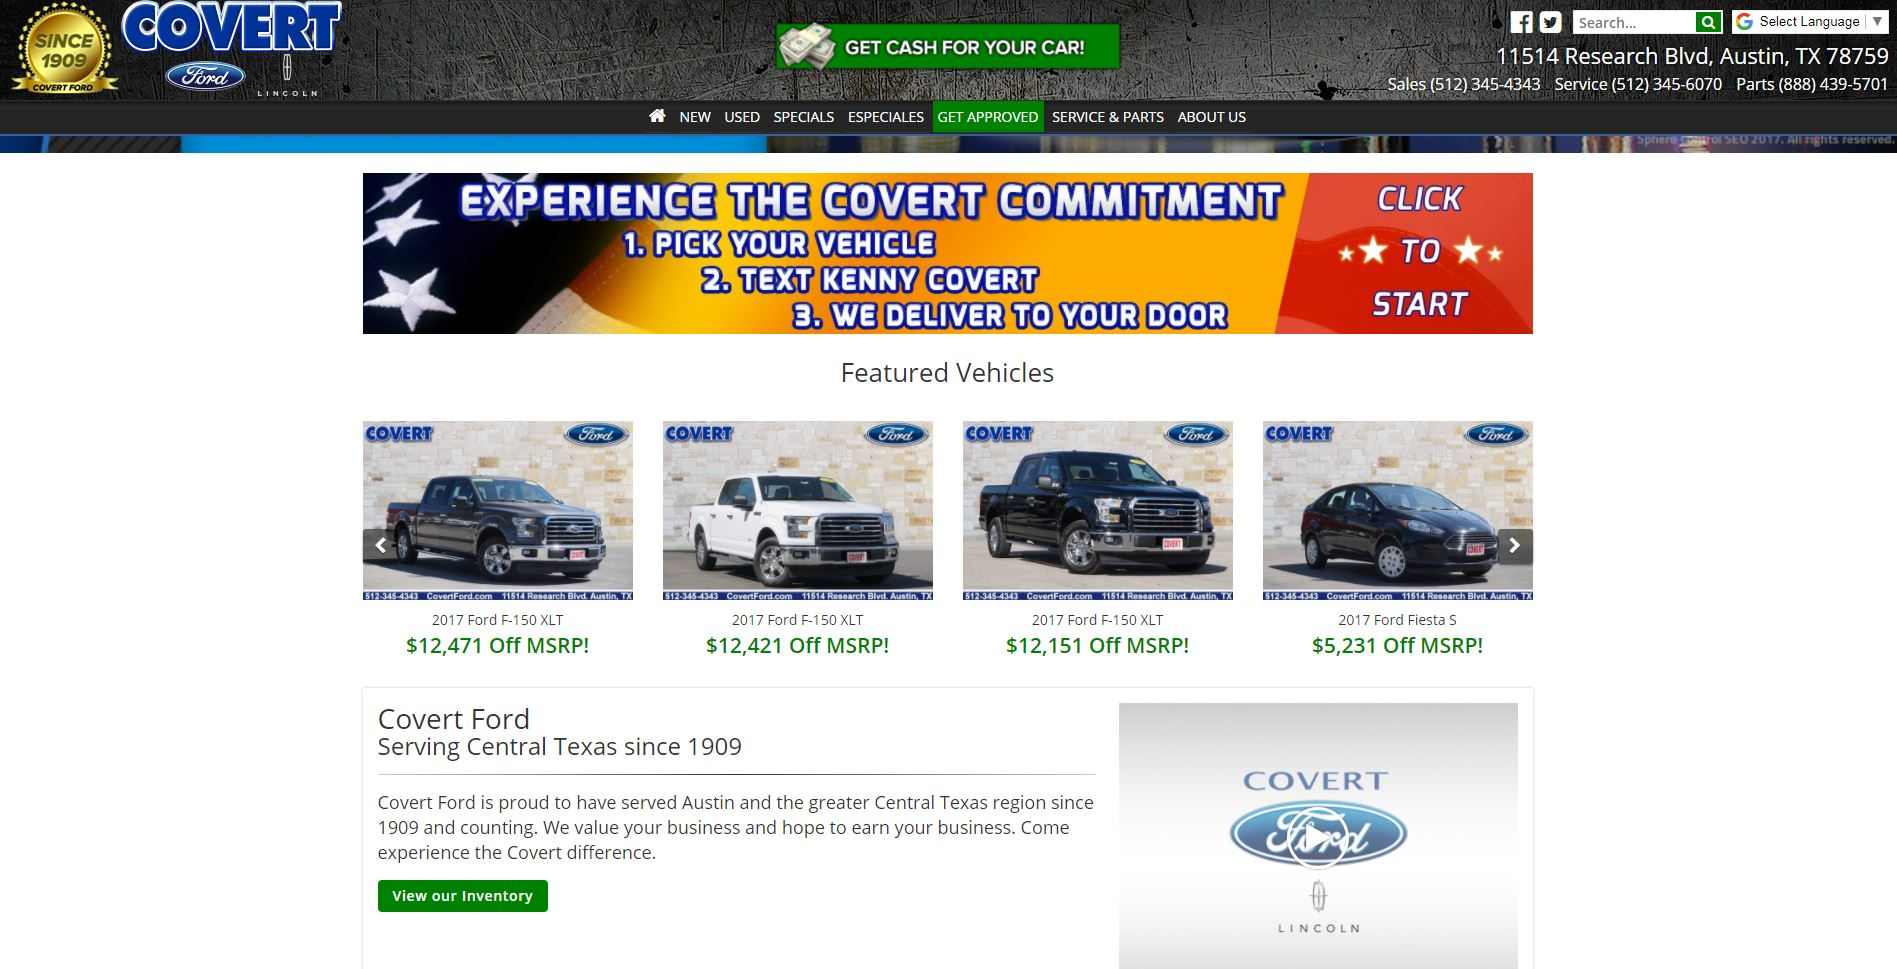 Three of the four 'featured vehicles' on the dealer's website Monday were new 2017 Ford F-150 trucks with an active recall.